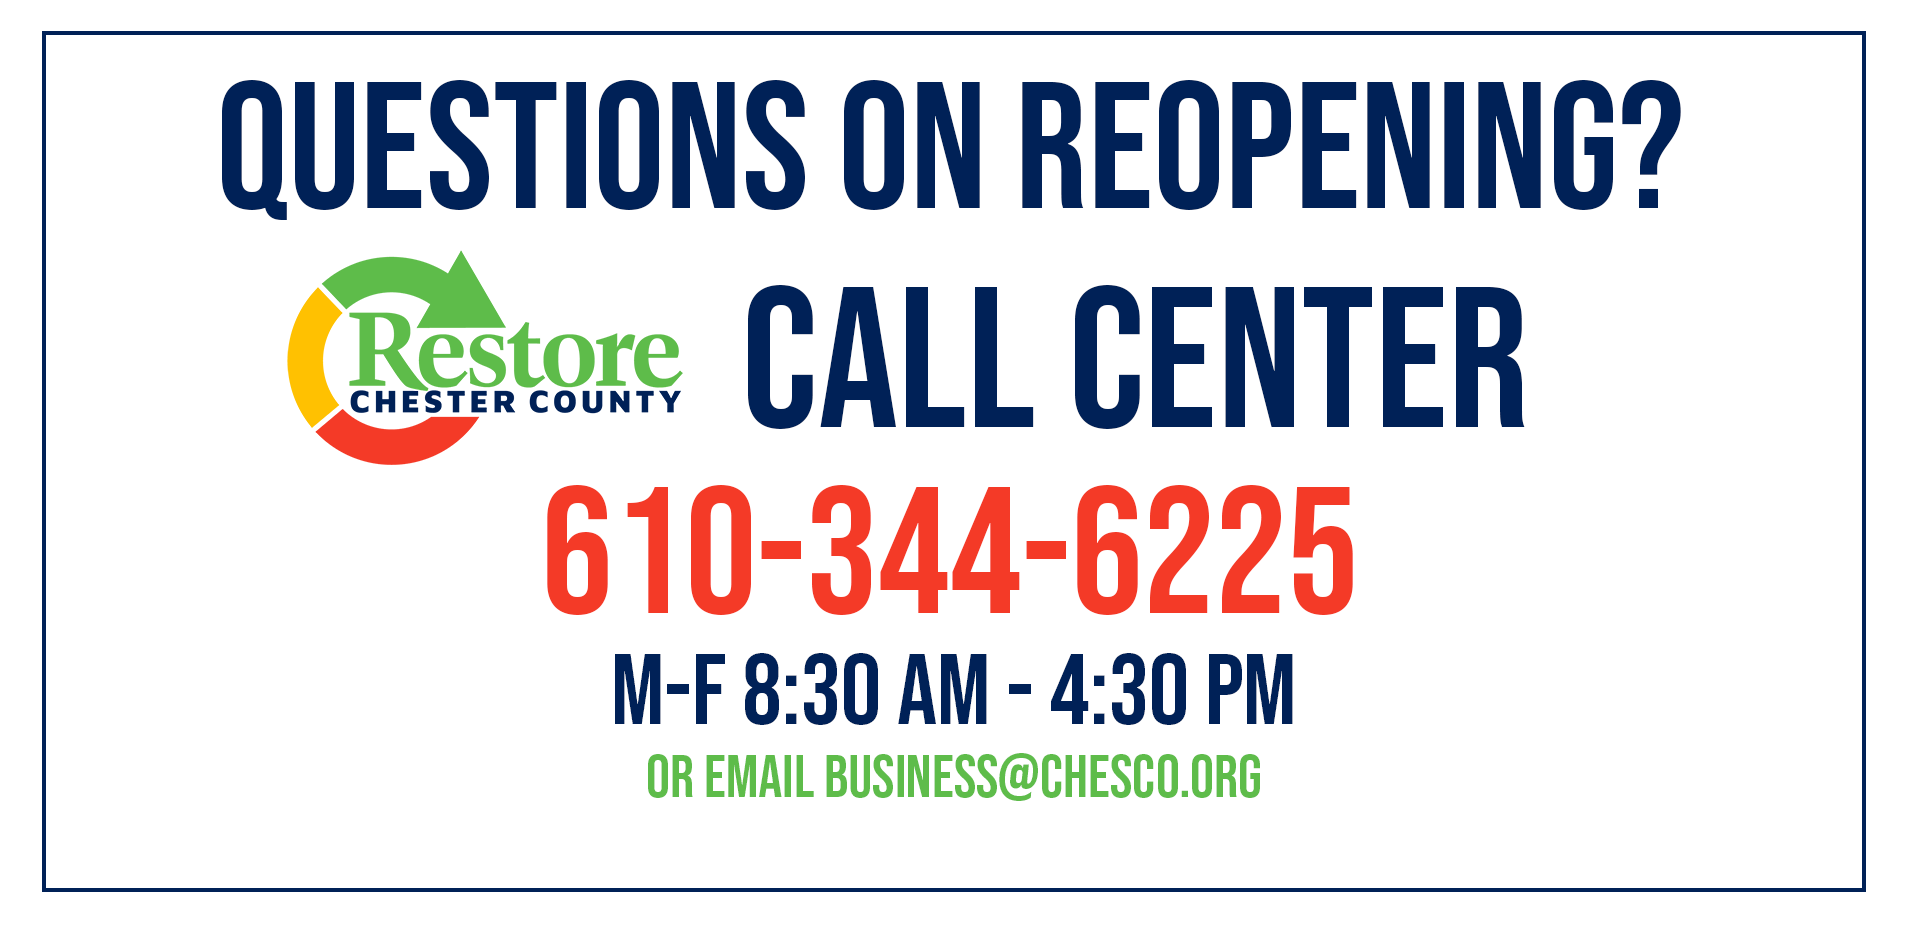 Chester County Adds Call-Center Service for Questions on Reopening